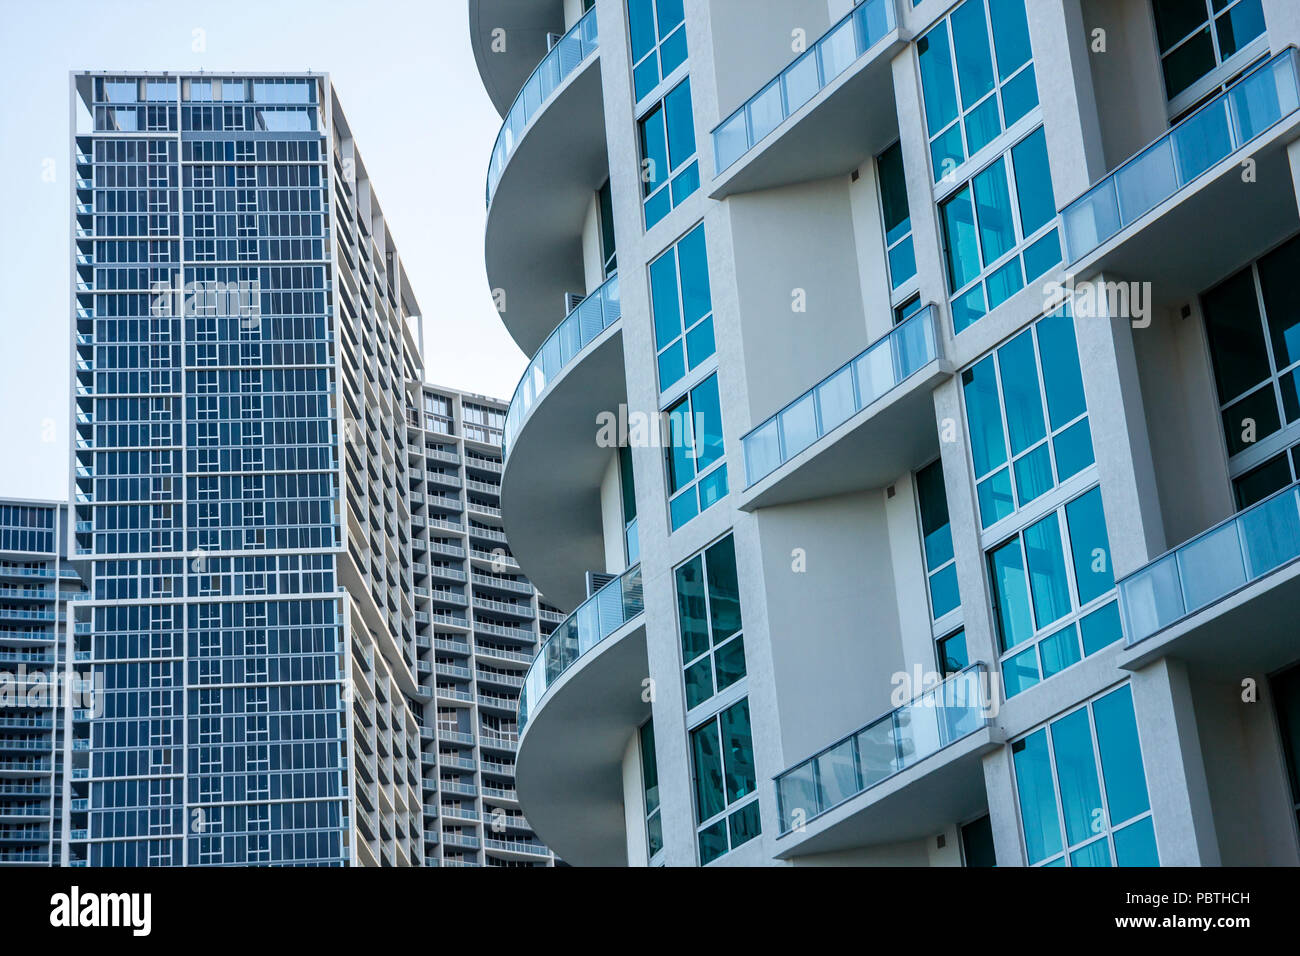 Bâtiment du centre-ville de Miami en Floride des tours d'habitation de la famille multi-fenêtres balcons condominiums appartements architecture moderne re Photo Stock